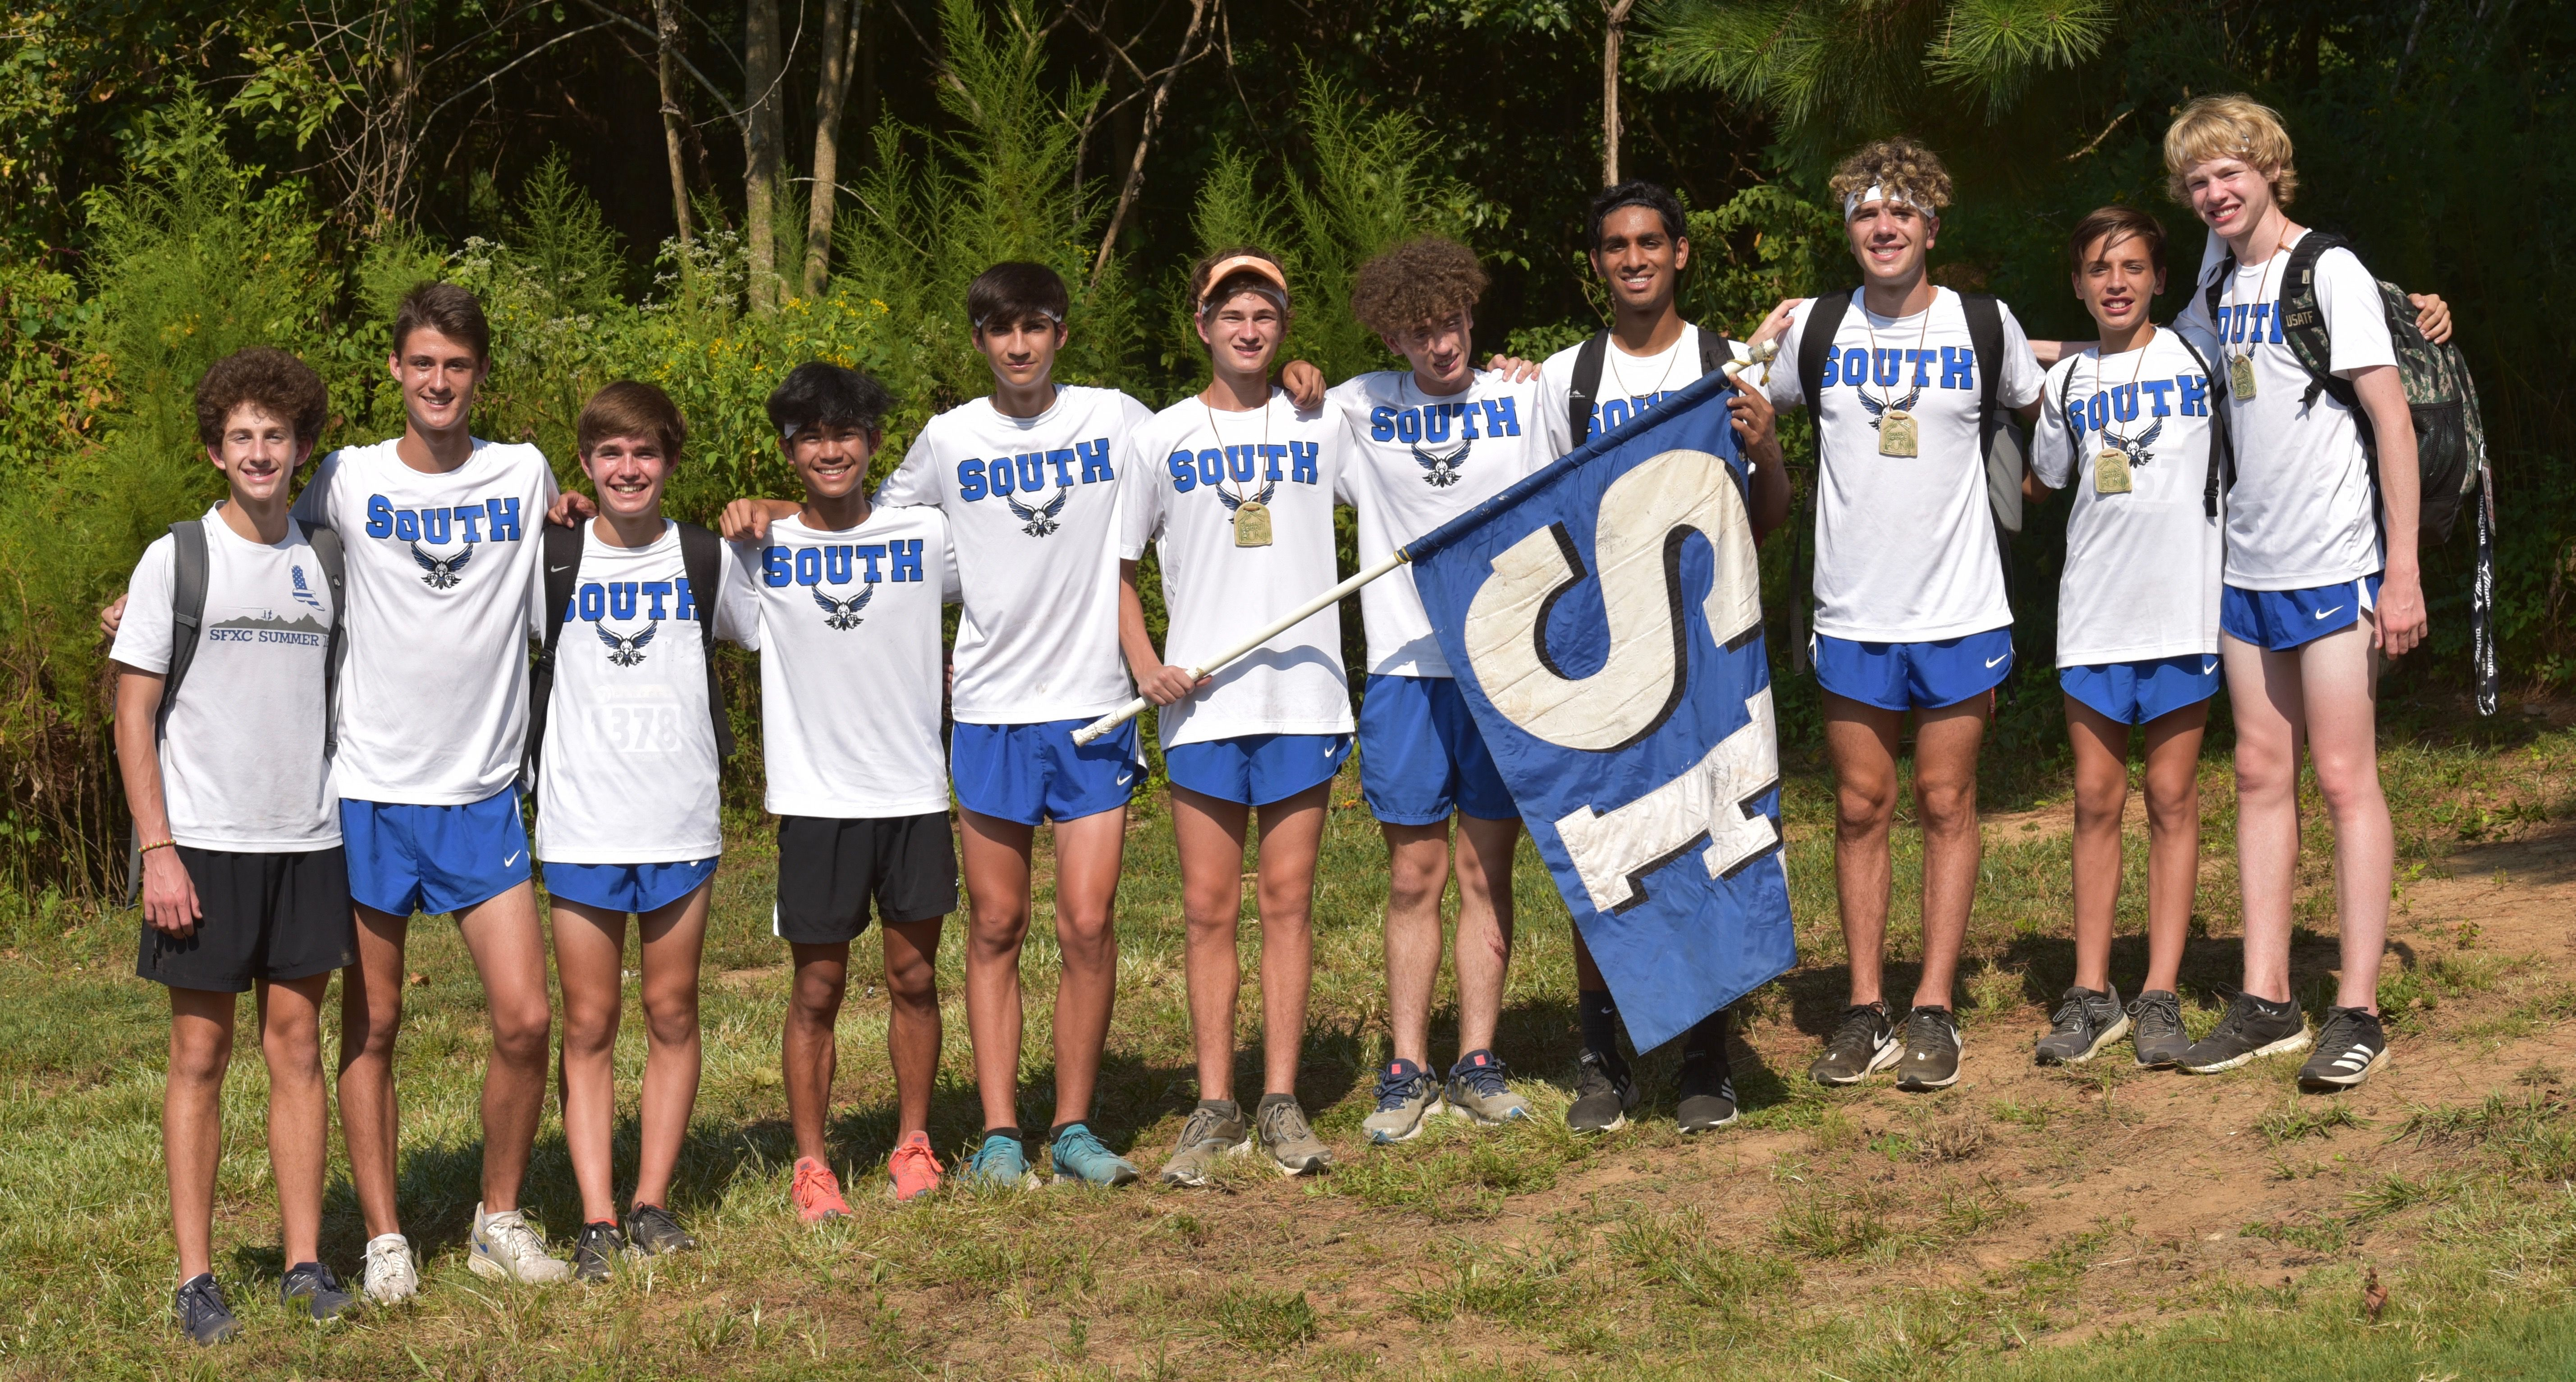 South Forsyth enters as the meet favorites